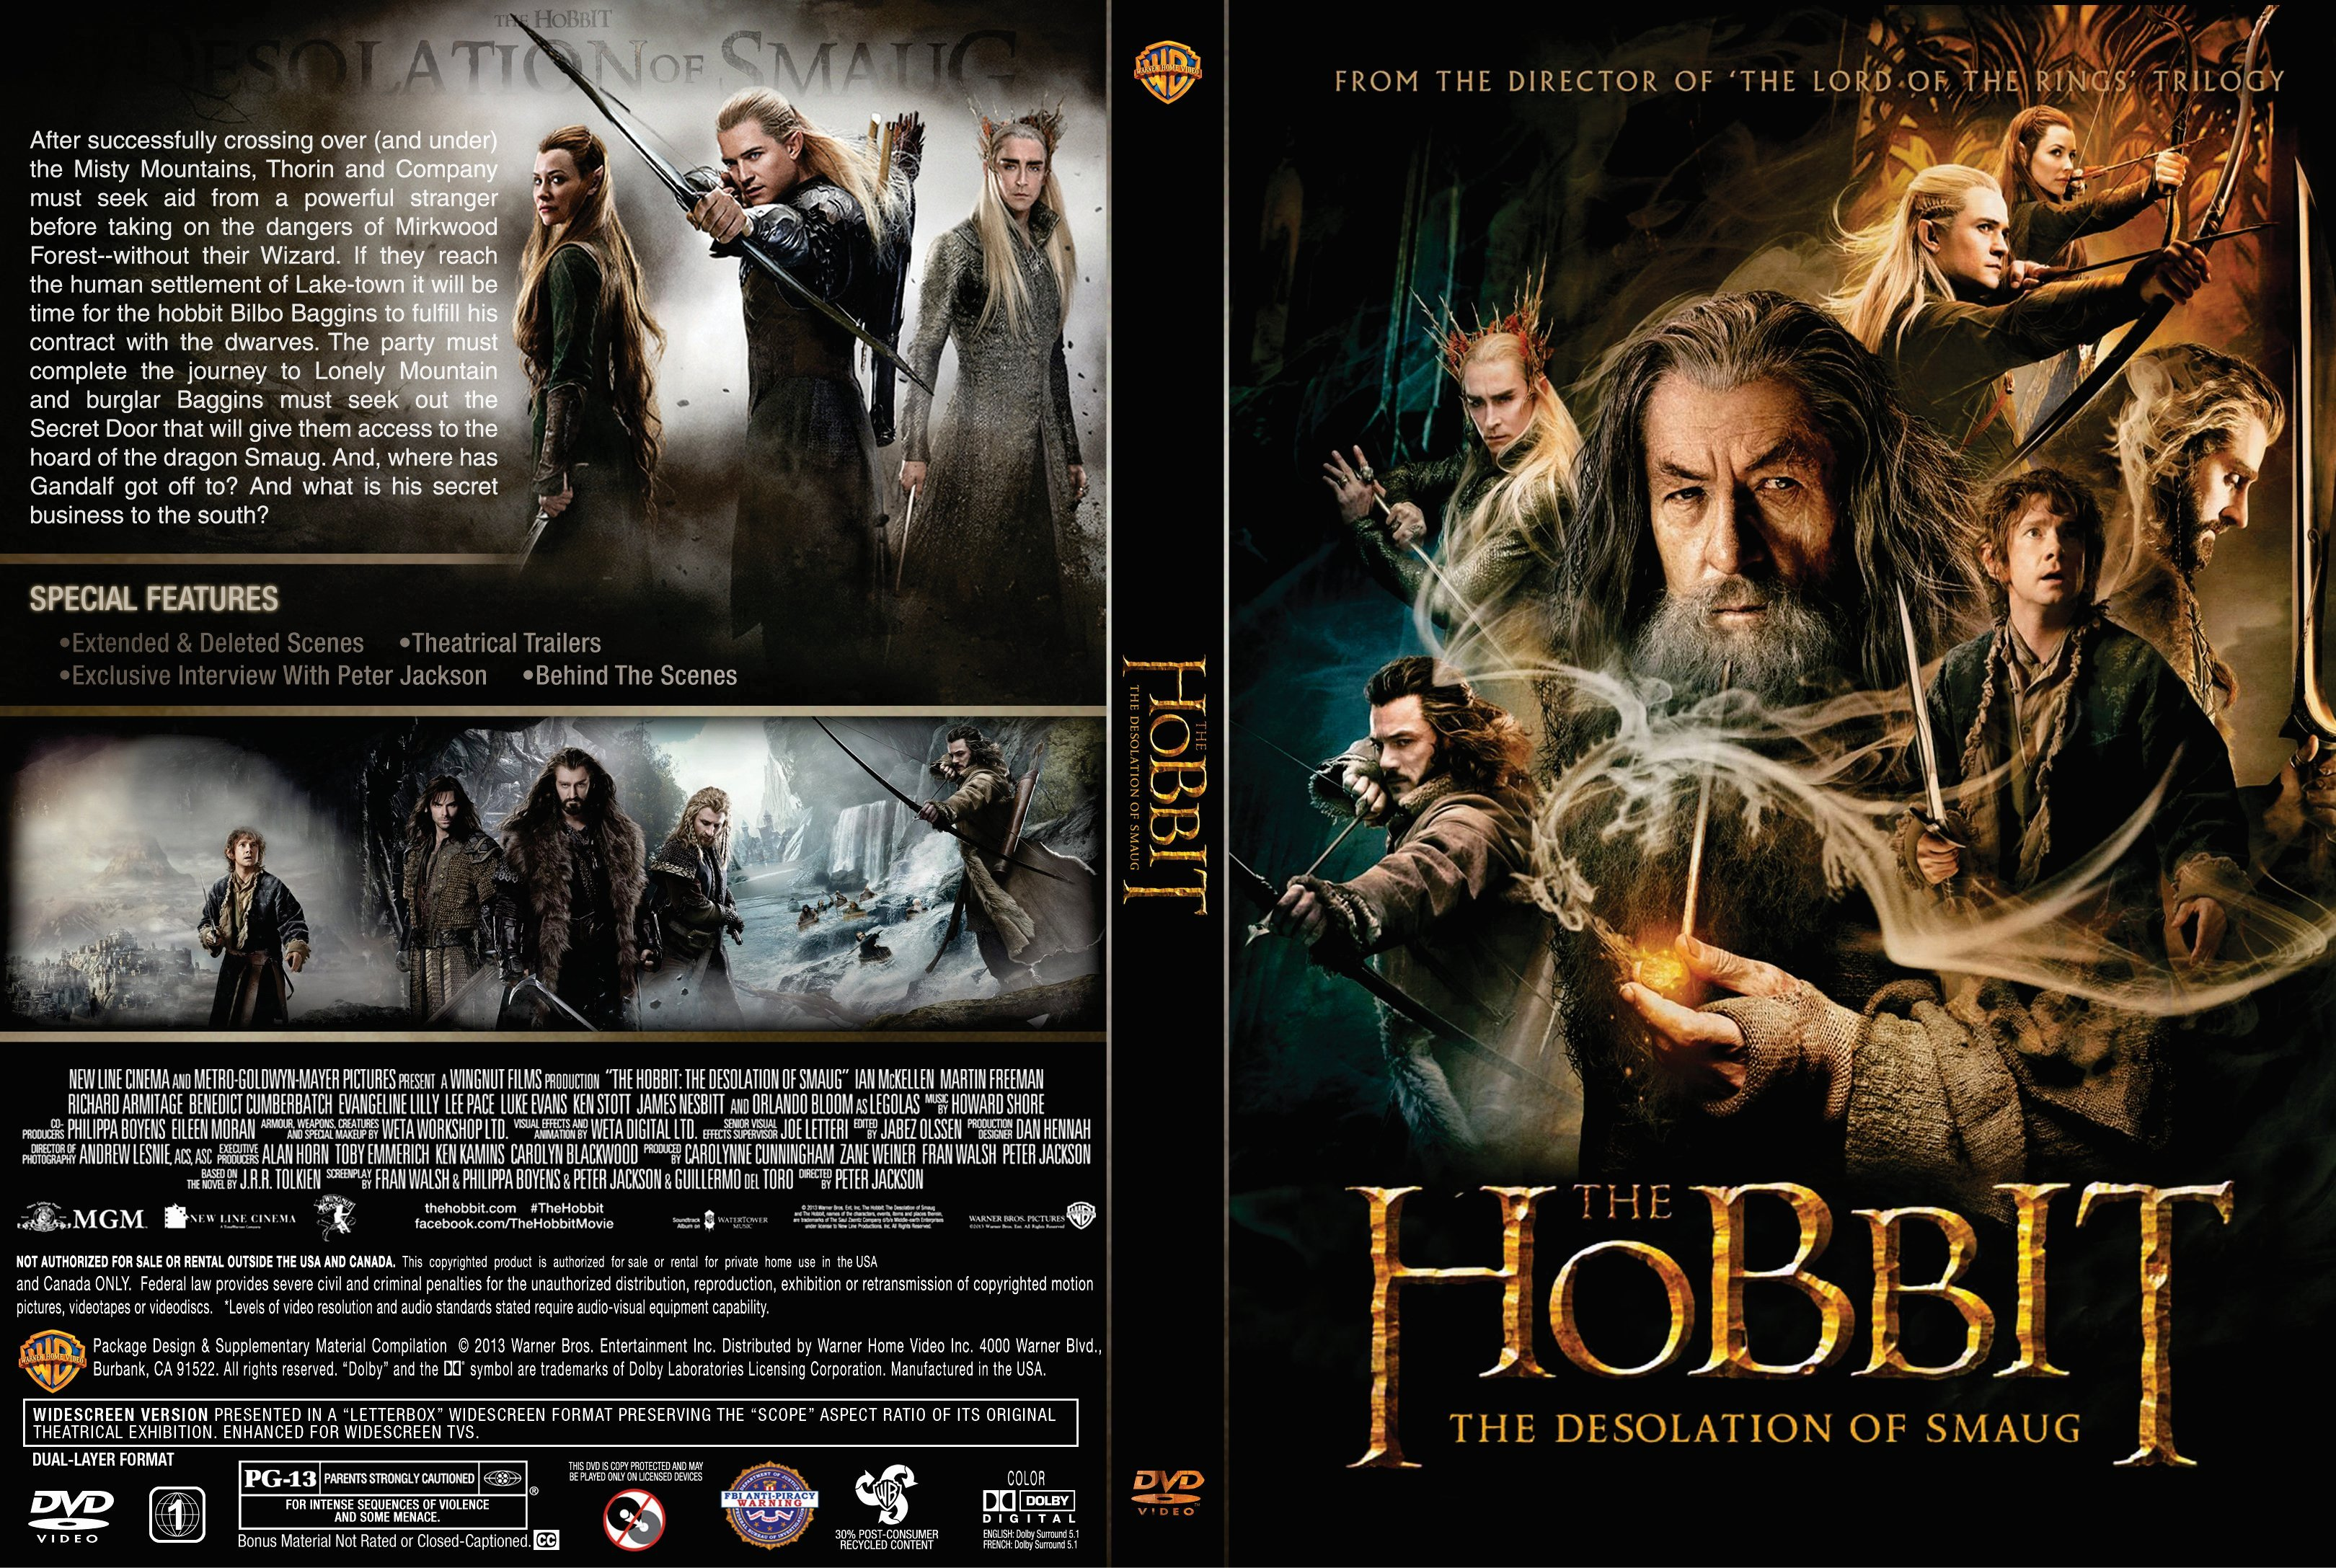 a report on the hobbit the desolation of smaug by jrr tolkien